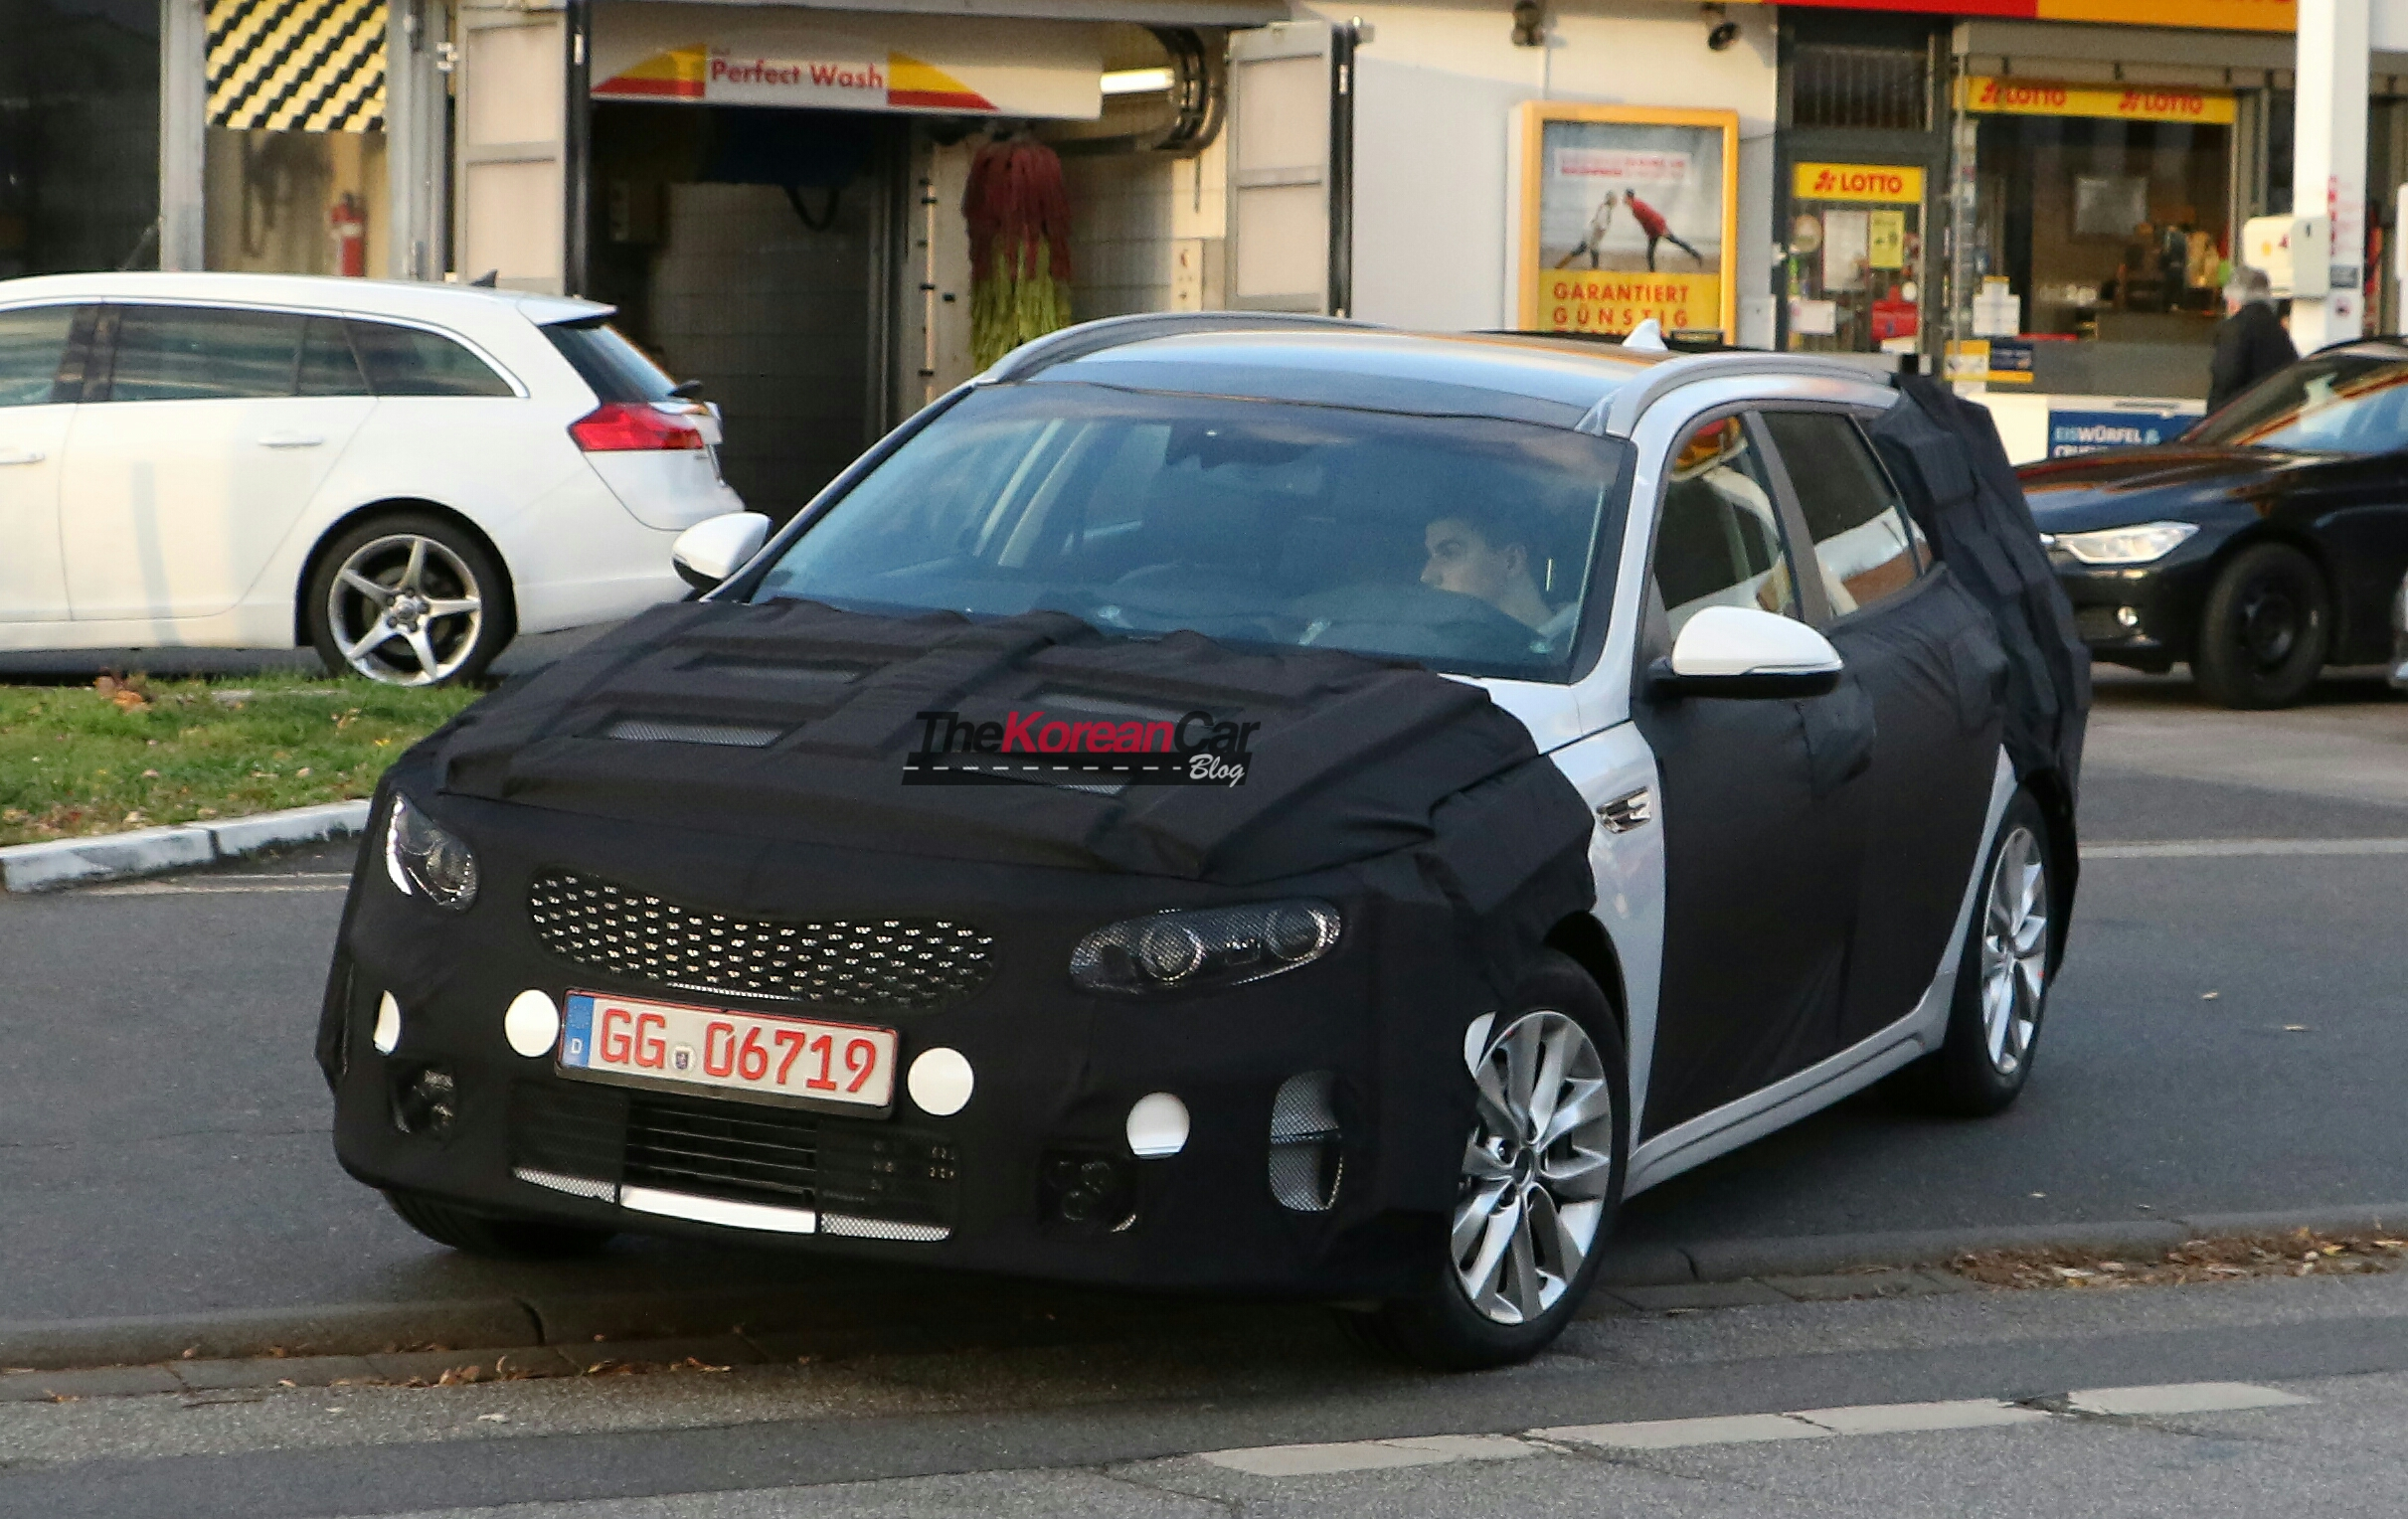 kia optima wagon spied for the first time the korean car blog. Black Bedroom Furniture Sets. Home Design Ideas